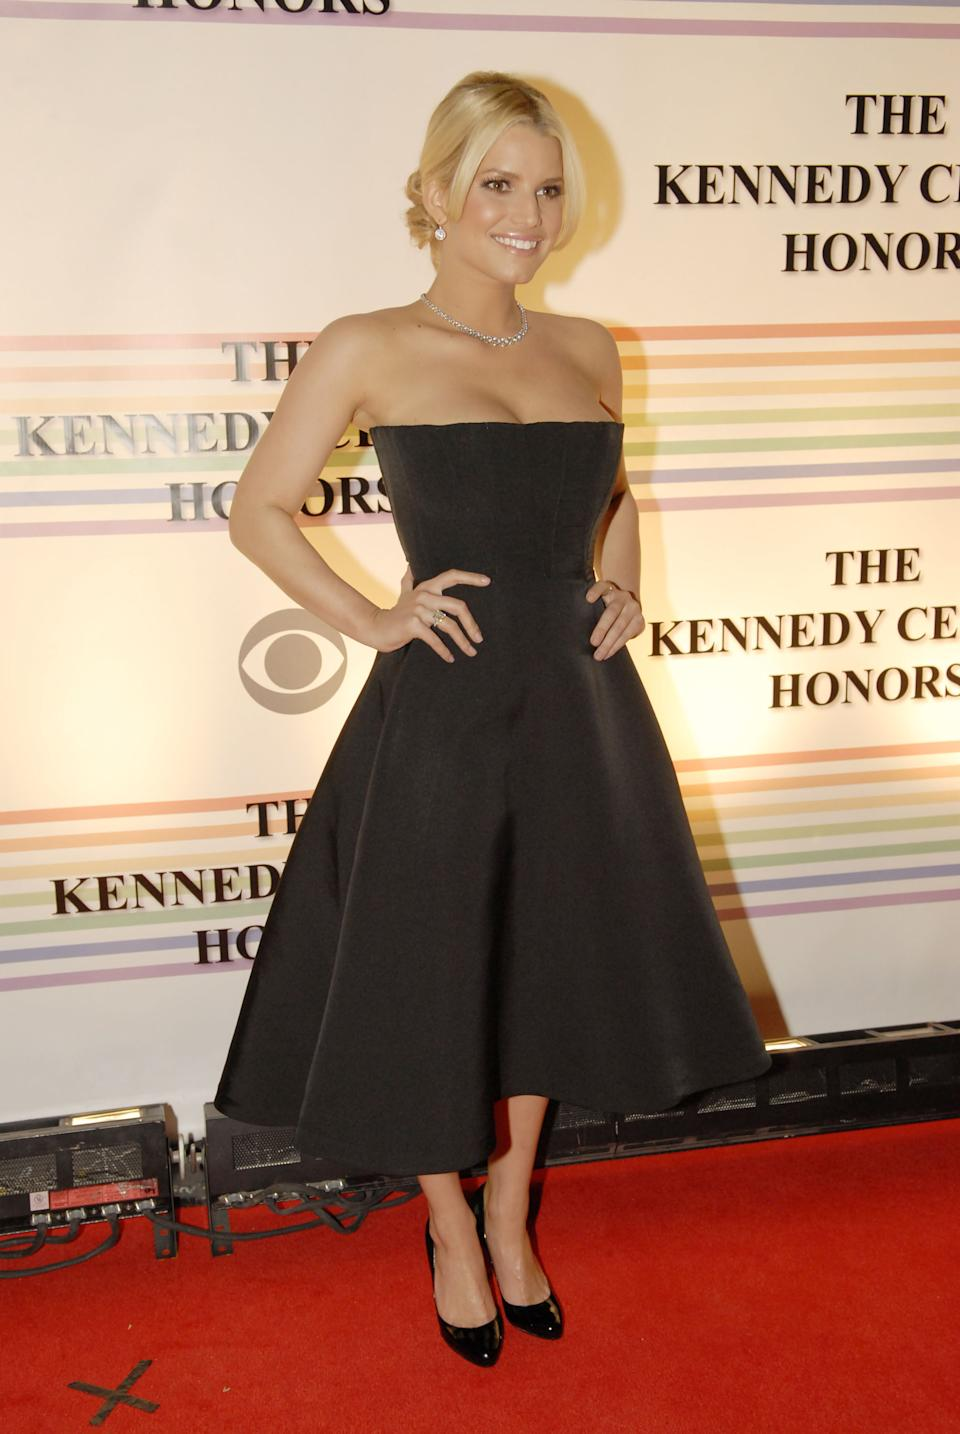 Jessica Simpson at the 2006 Kennedy Center Honors Image via Getty Images.